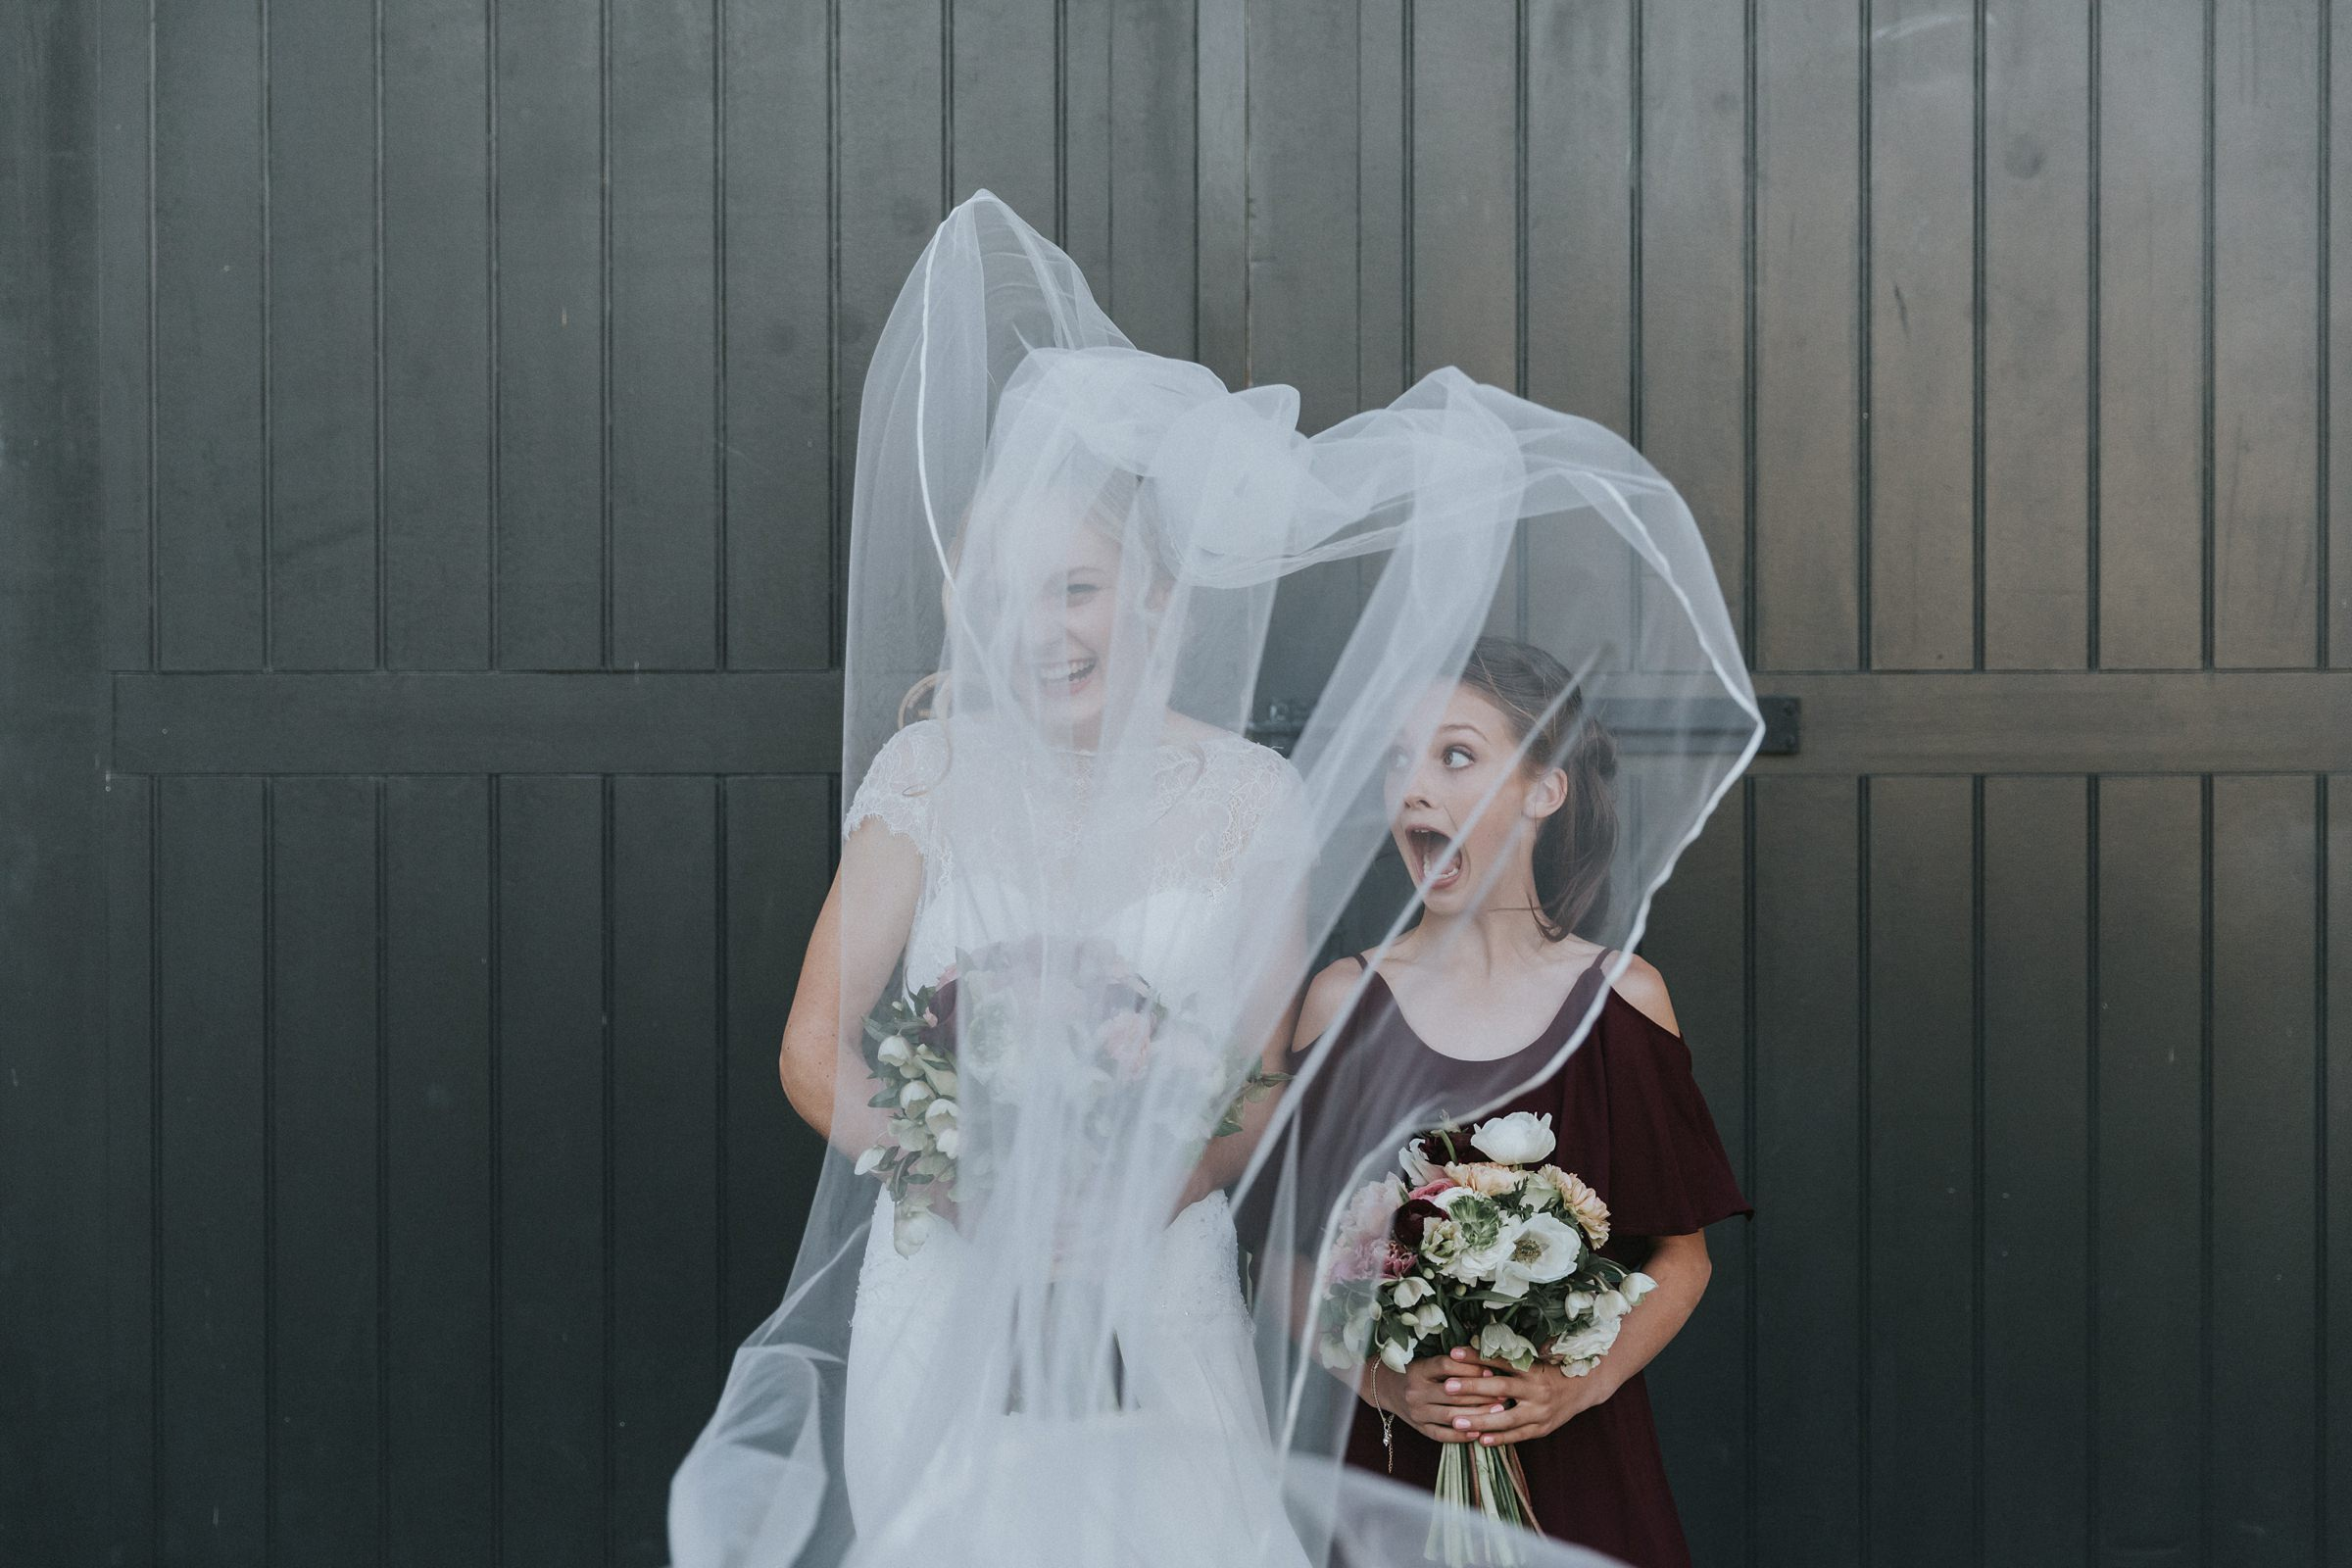 brides sister stunned by the veil flying in the wind